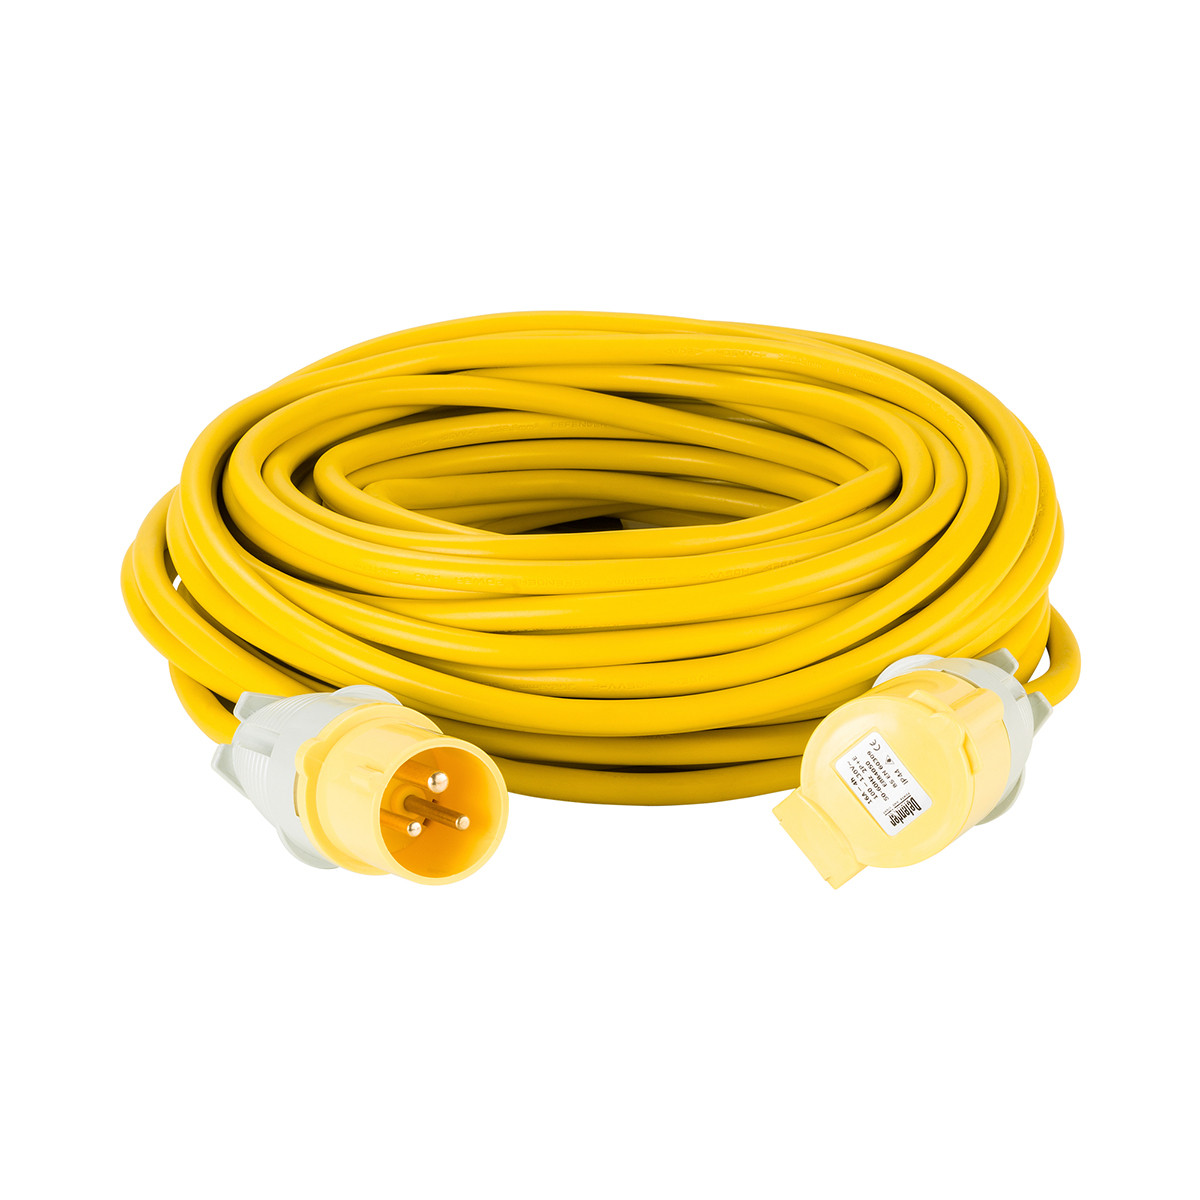 25M 2.5MM Extension Lead 110V 16A IP44